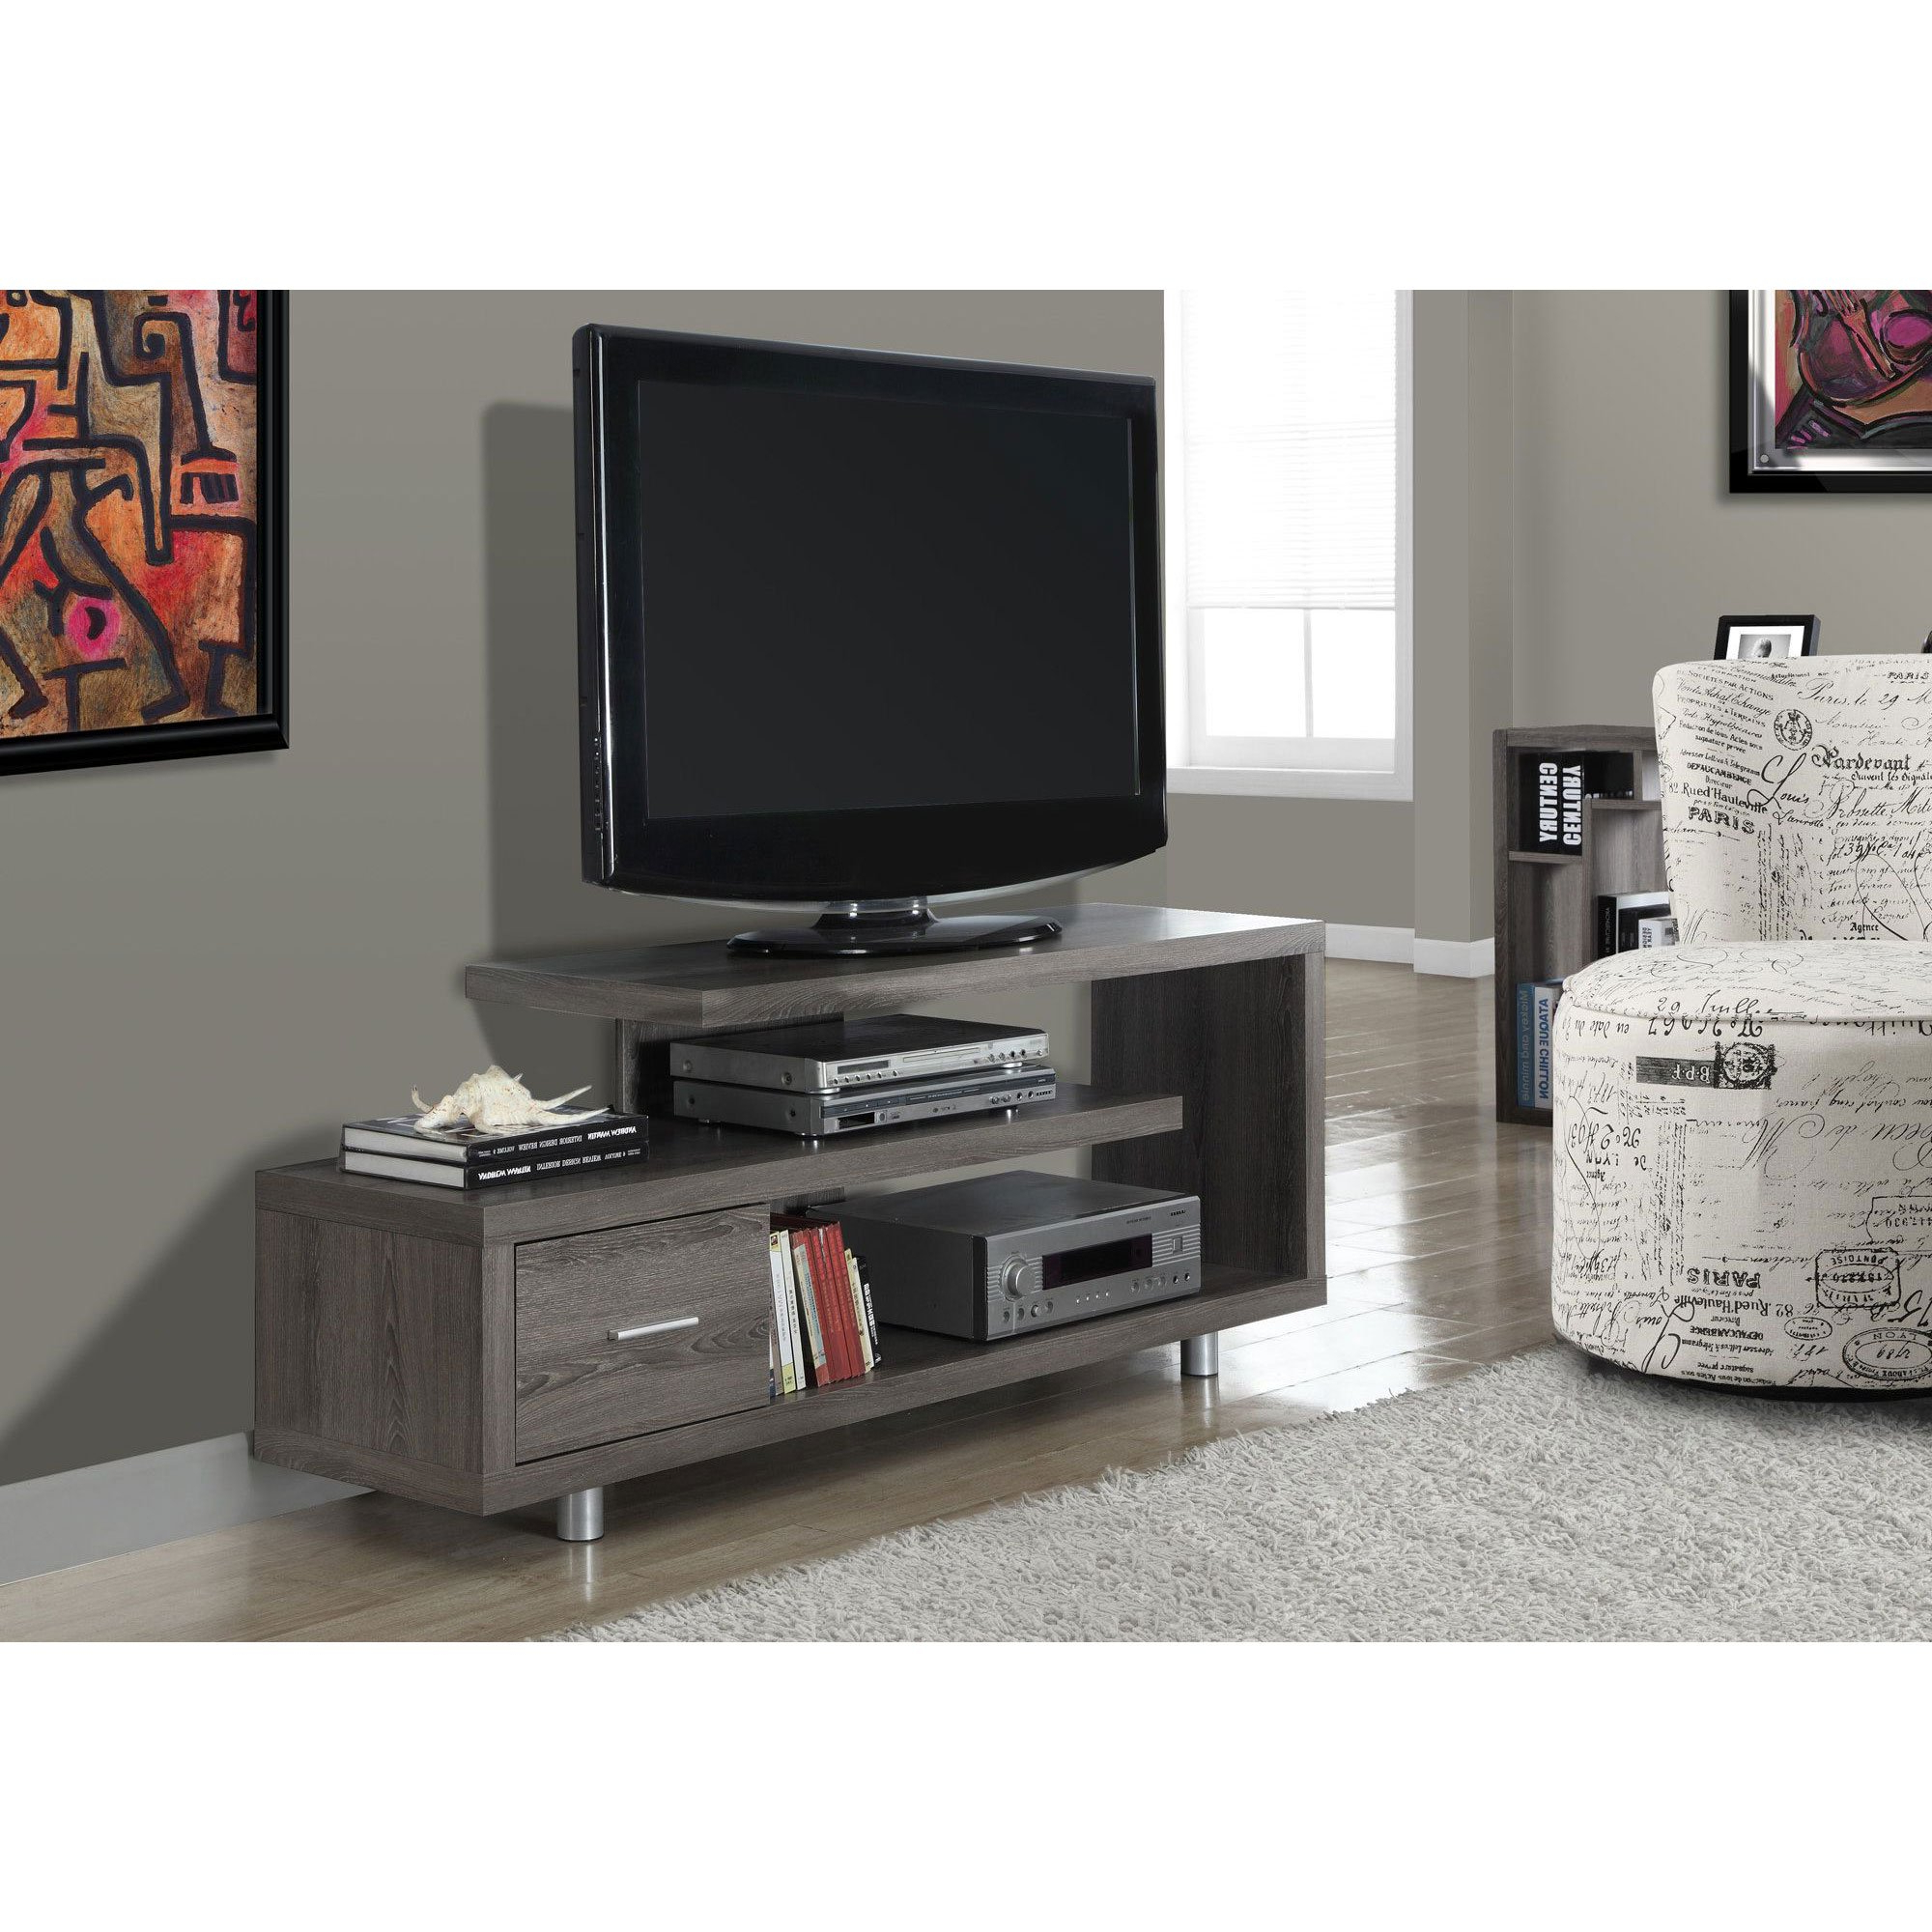 "Maddy 60 Inch Tv Stands With Most Popular Monarch Tv Stand White With 1 Drawer For Tvs Up To 47""l – Walmart (View 7 of 20)"